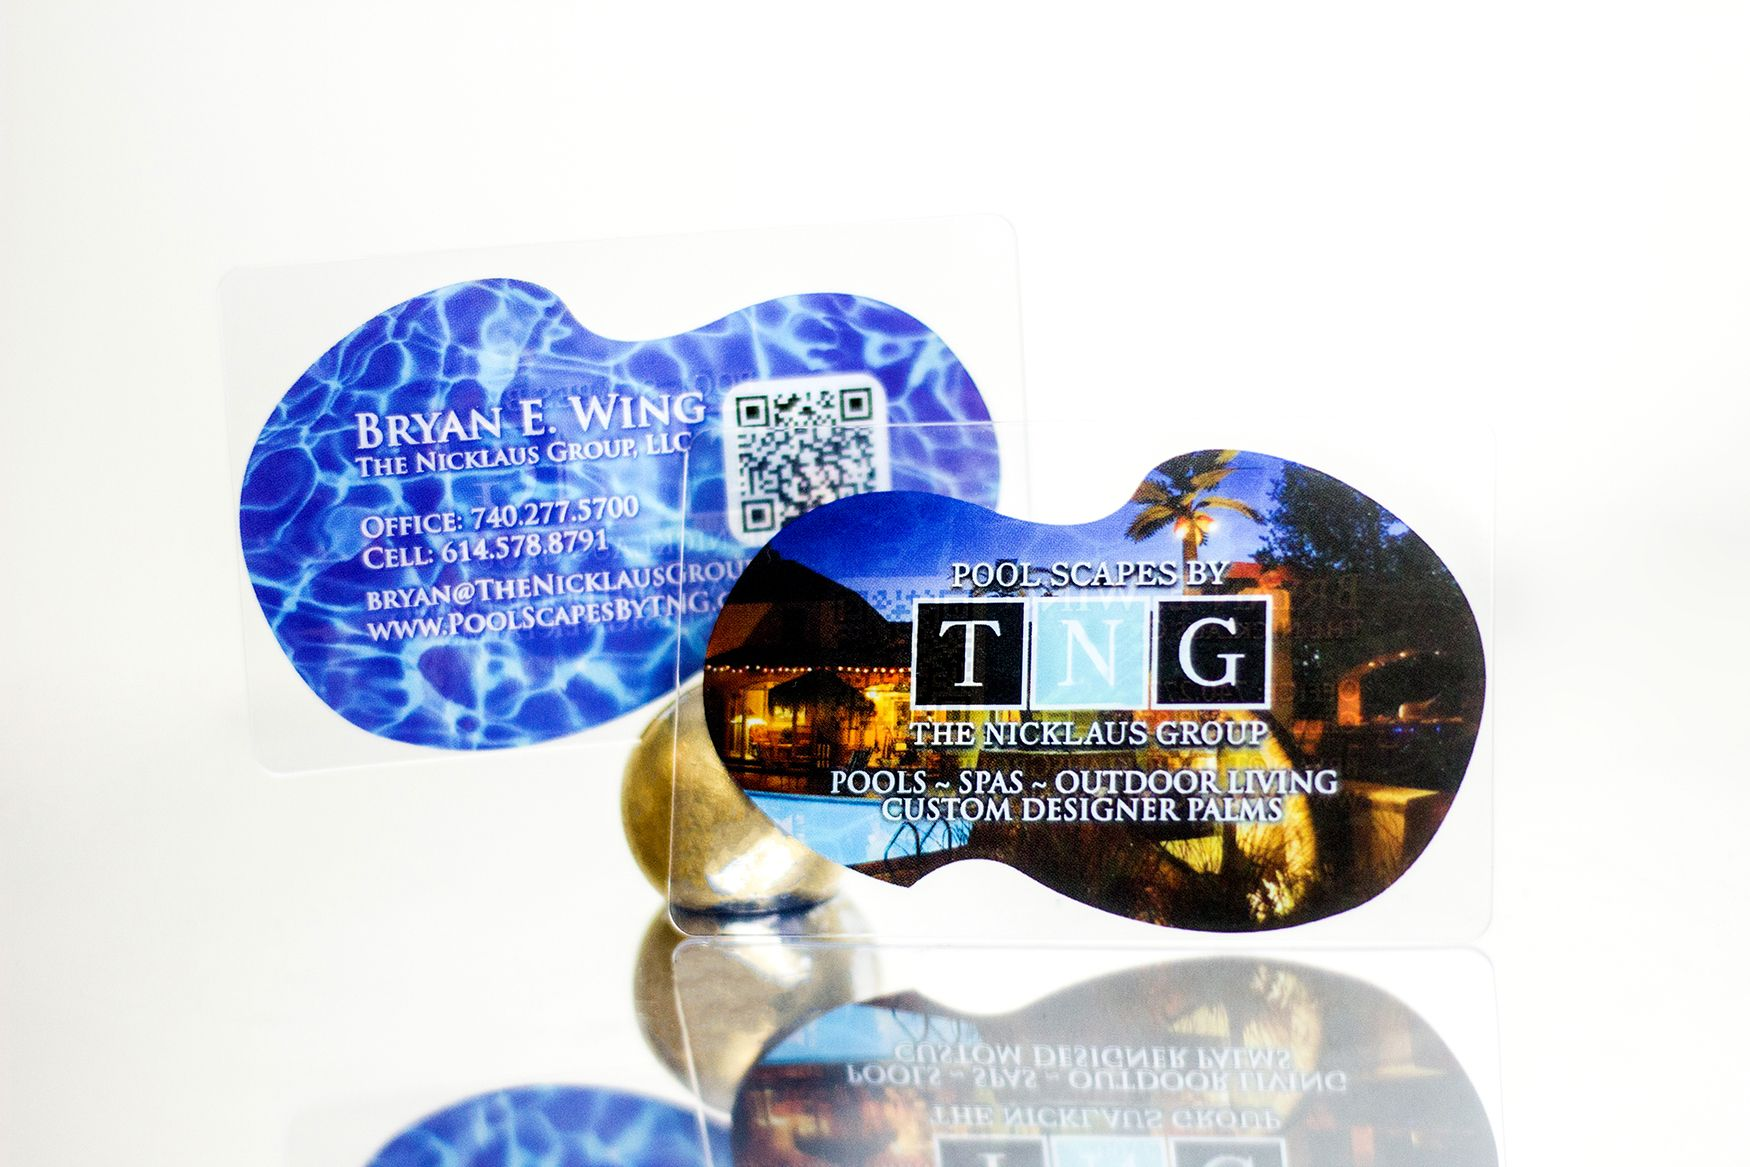 creative transparent business cards for pool and spa professionals ...